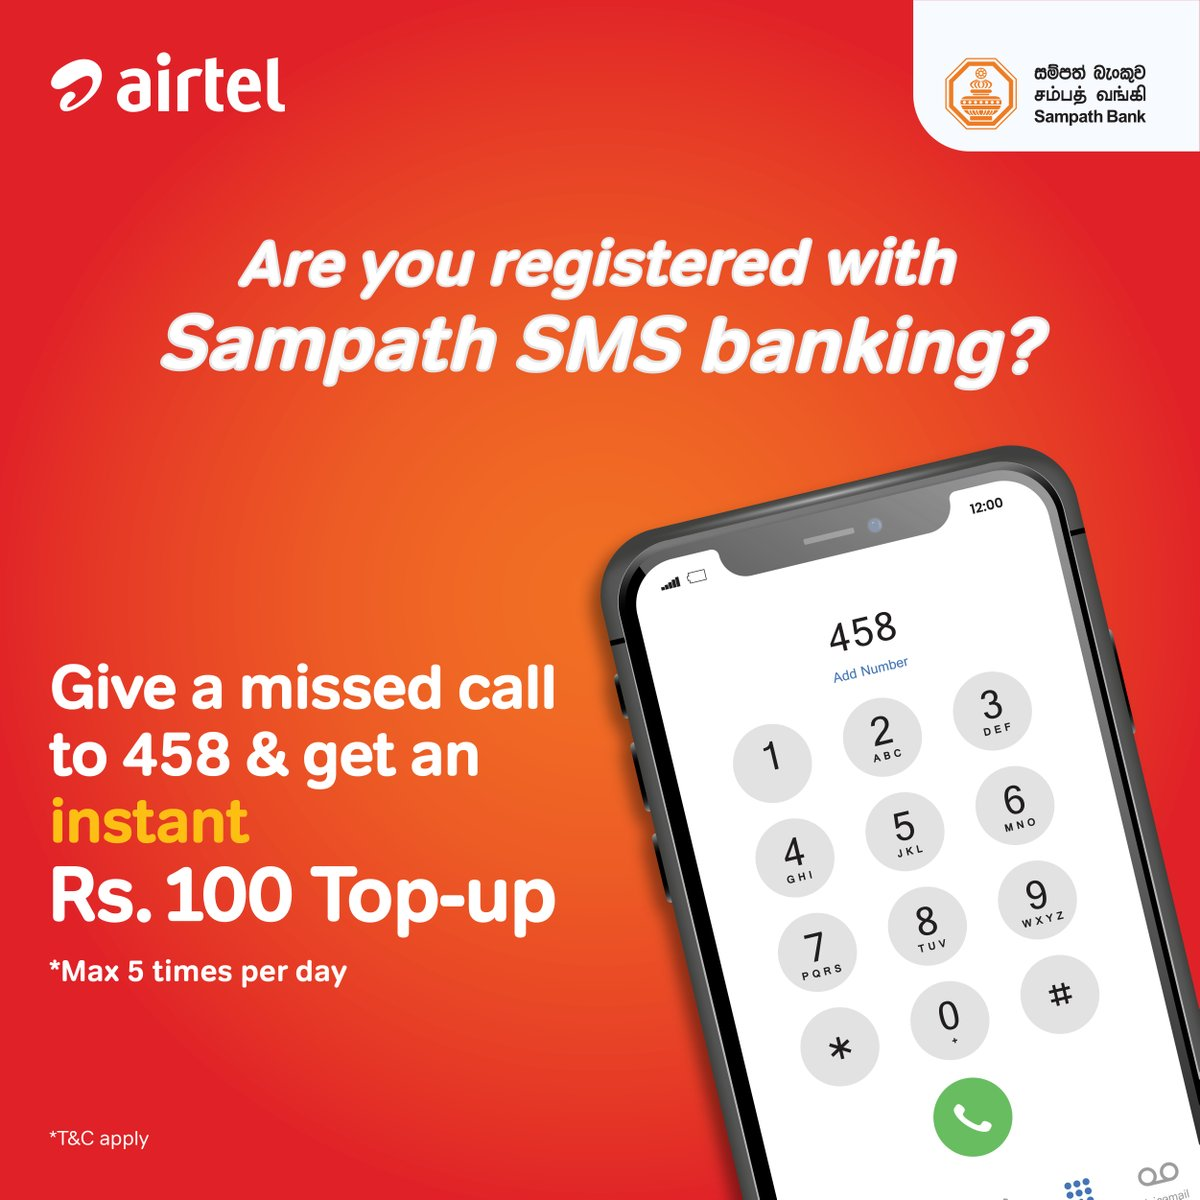 Introducing Sampath Bank Missed Call top up Service on Airtel! Simply give a missed call to 458 & get Rs.100 Top-Up to your SMS banking registered airtel connection. This service is applicable for Sampath bank account holders. Valid for prepaid and postpaid customers 😎 https://t.co/BhxeZhh5DM